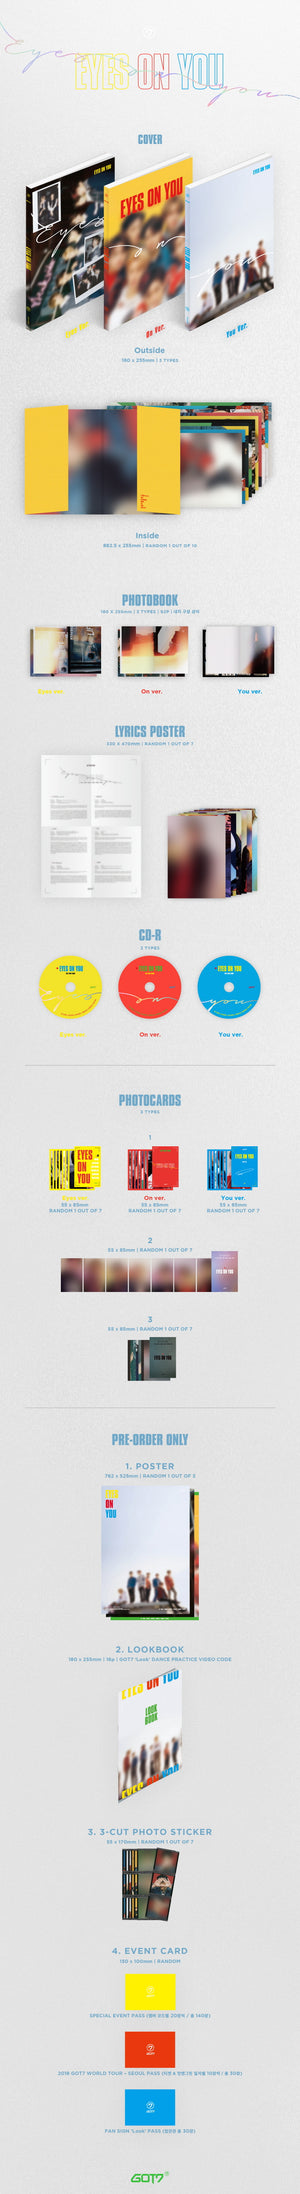 [GOT7] 8TH MINI ALBUM - EYES ON YOU - Kpop FTW